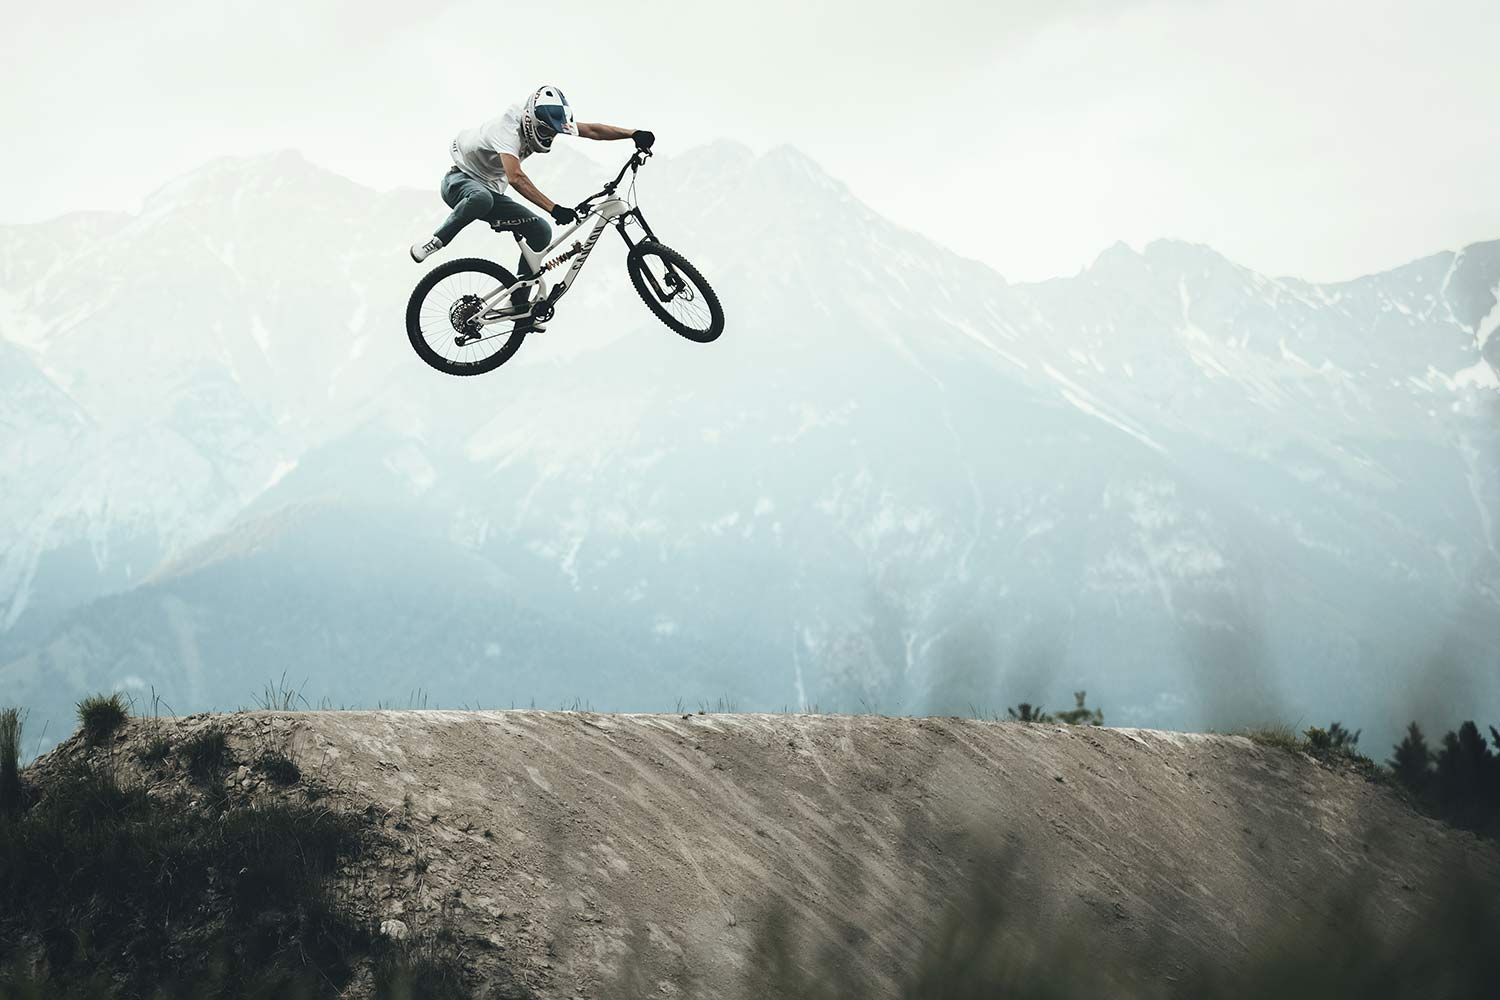 Canyon Torque CF Fabio Wibmer Signature Edition limited pro carbon freeride enduro bike,jump photo by Hannes Berger